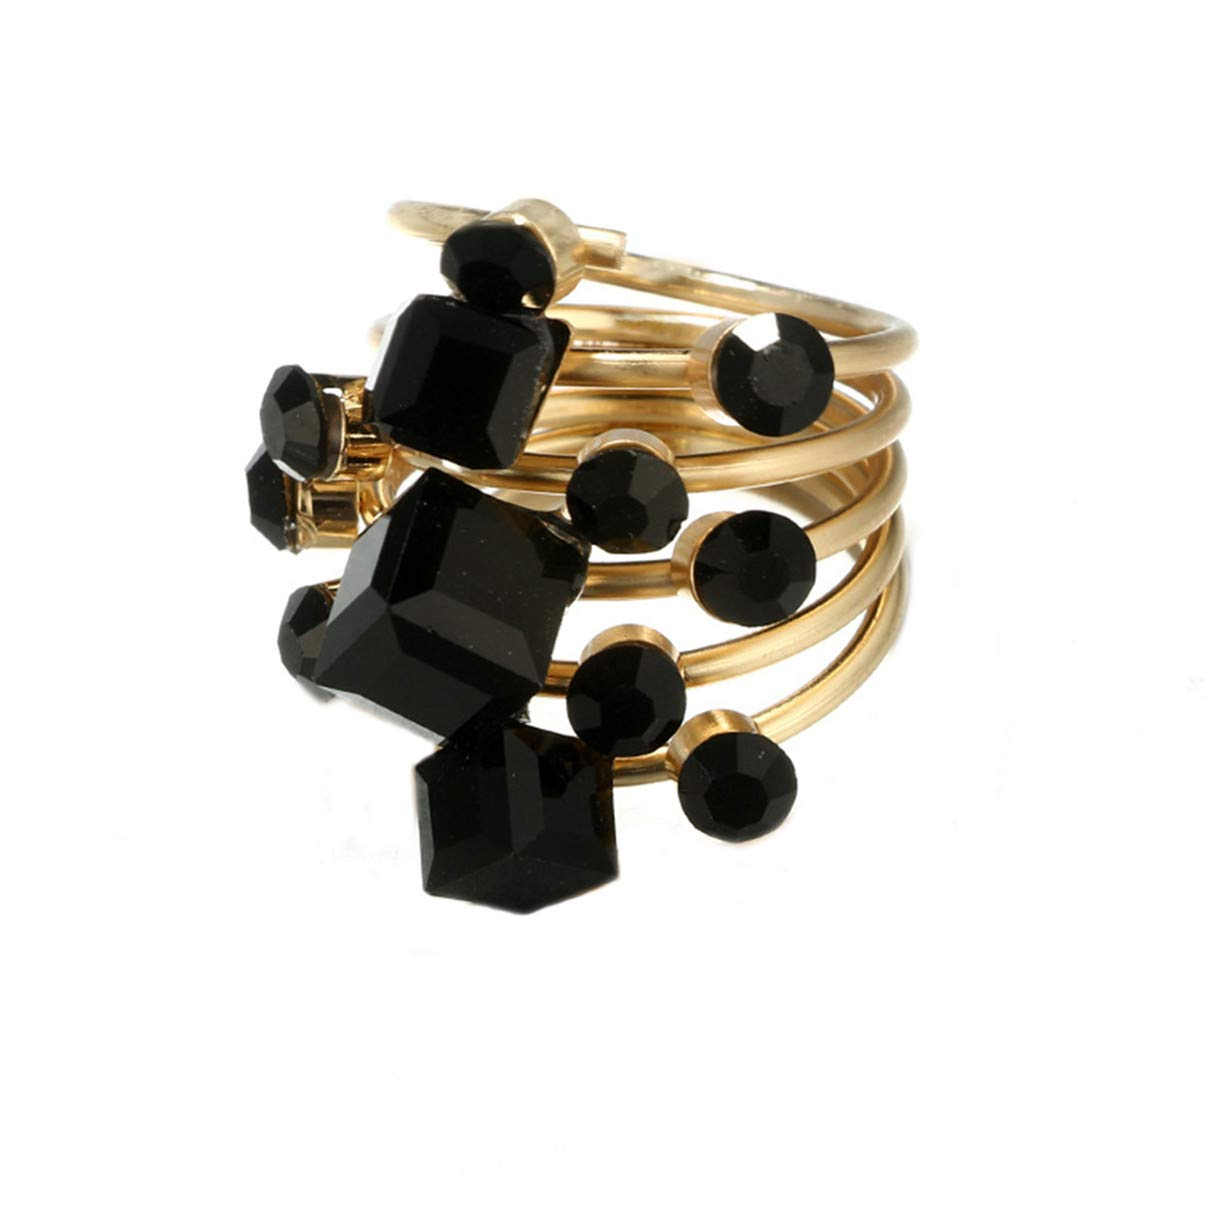 Essencedelight Golden Ring Black Rhinestone Elegant Opening Finger Ring Statement Ring Layer Cross Rings for Women Jewelry Gift